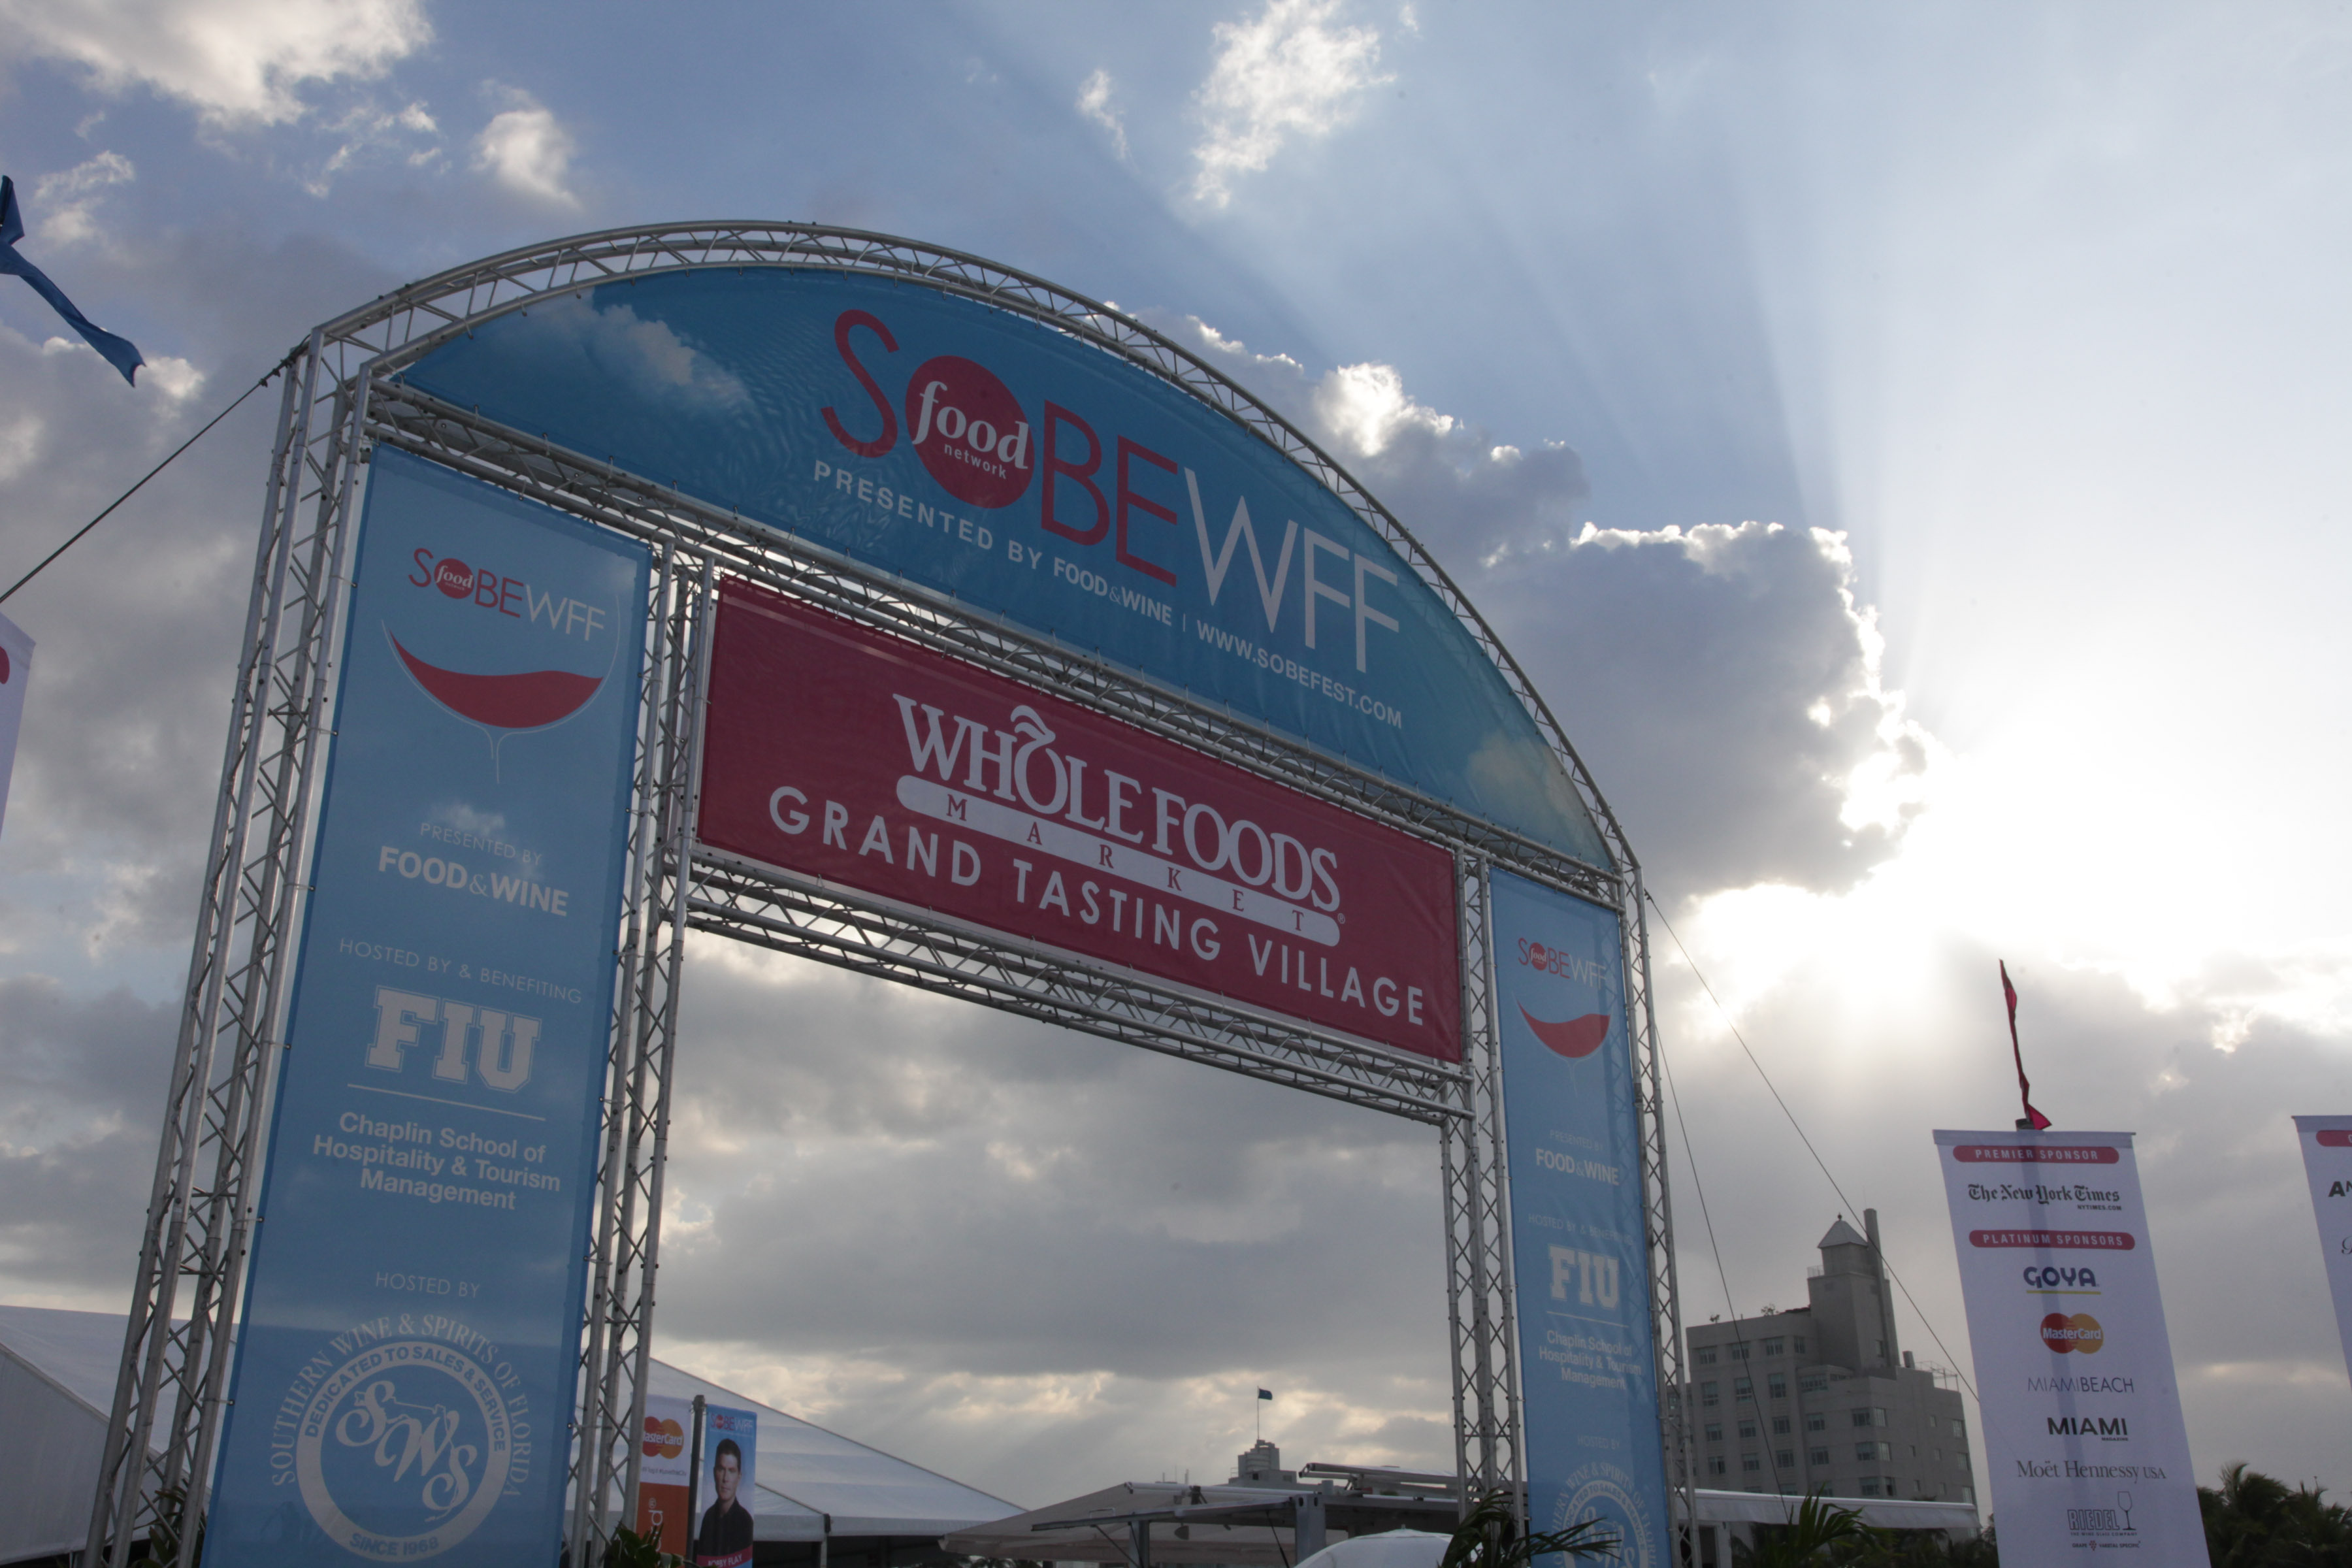 13th annual Food Network South Beach Wine & Food Festival presented by FOOD & WINE Feb. 20-23 (Photo: Business Wire)